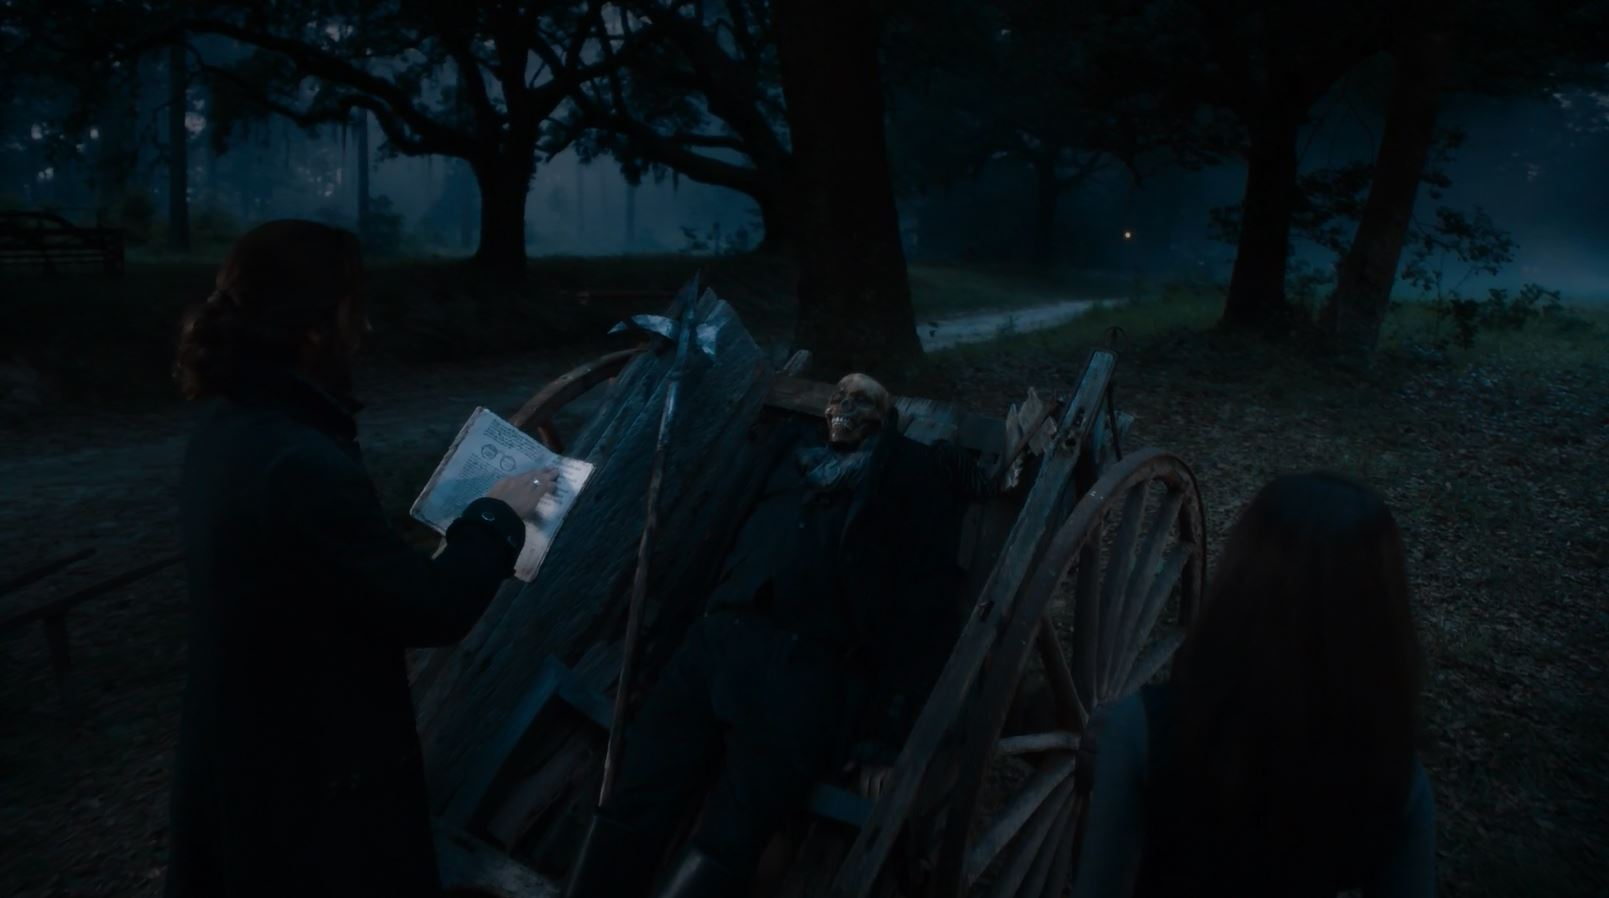 Sleepy Hollow S2Ep2 The Kindred Review - Ichabod and Abbie raising Franklin-stein